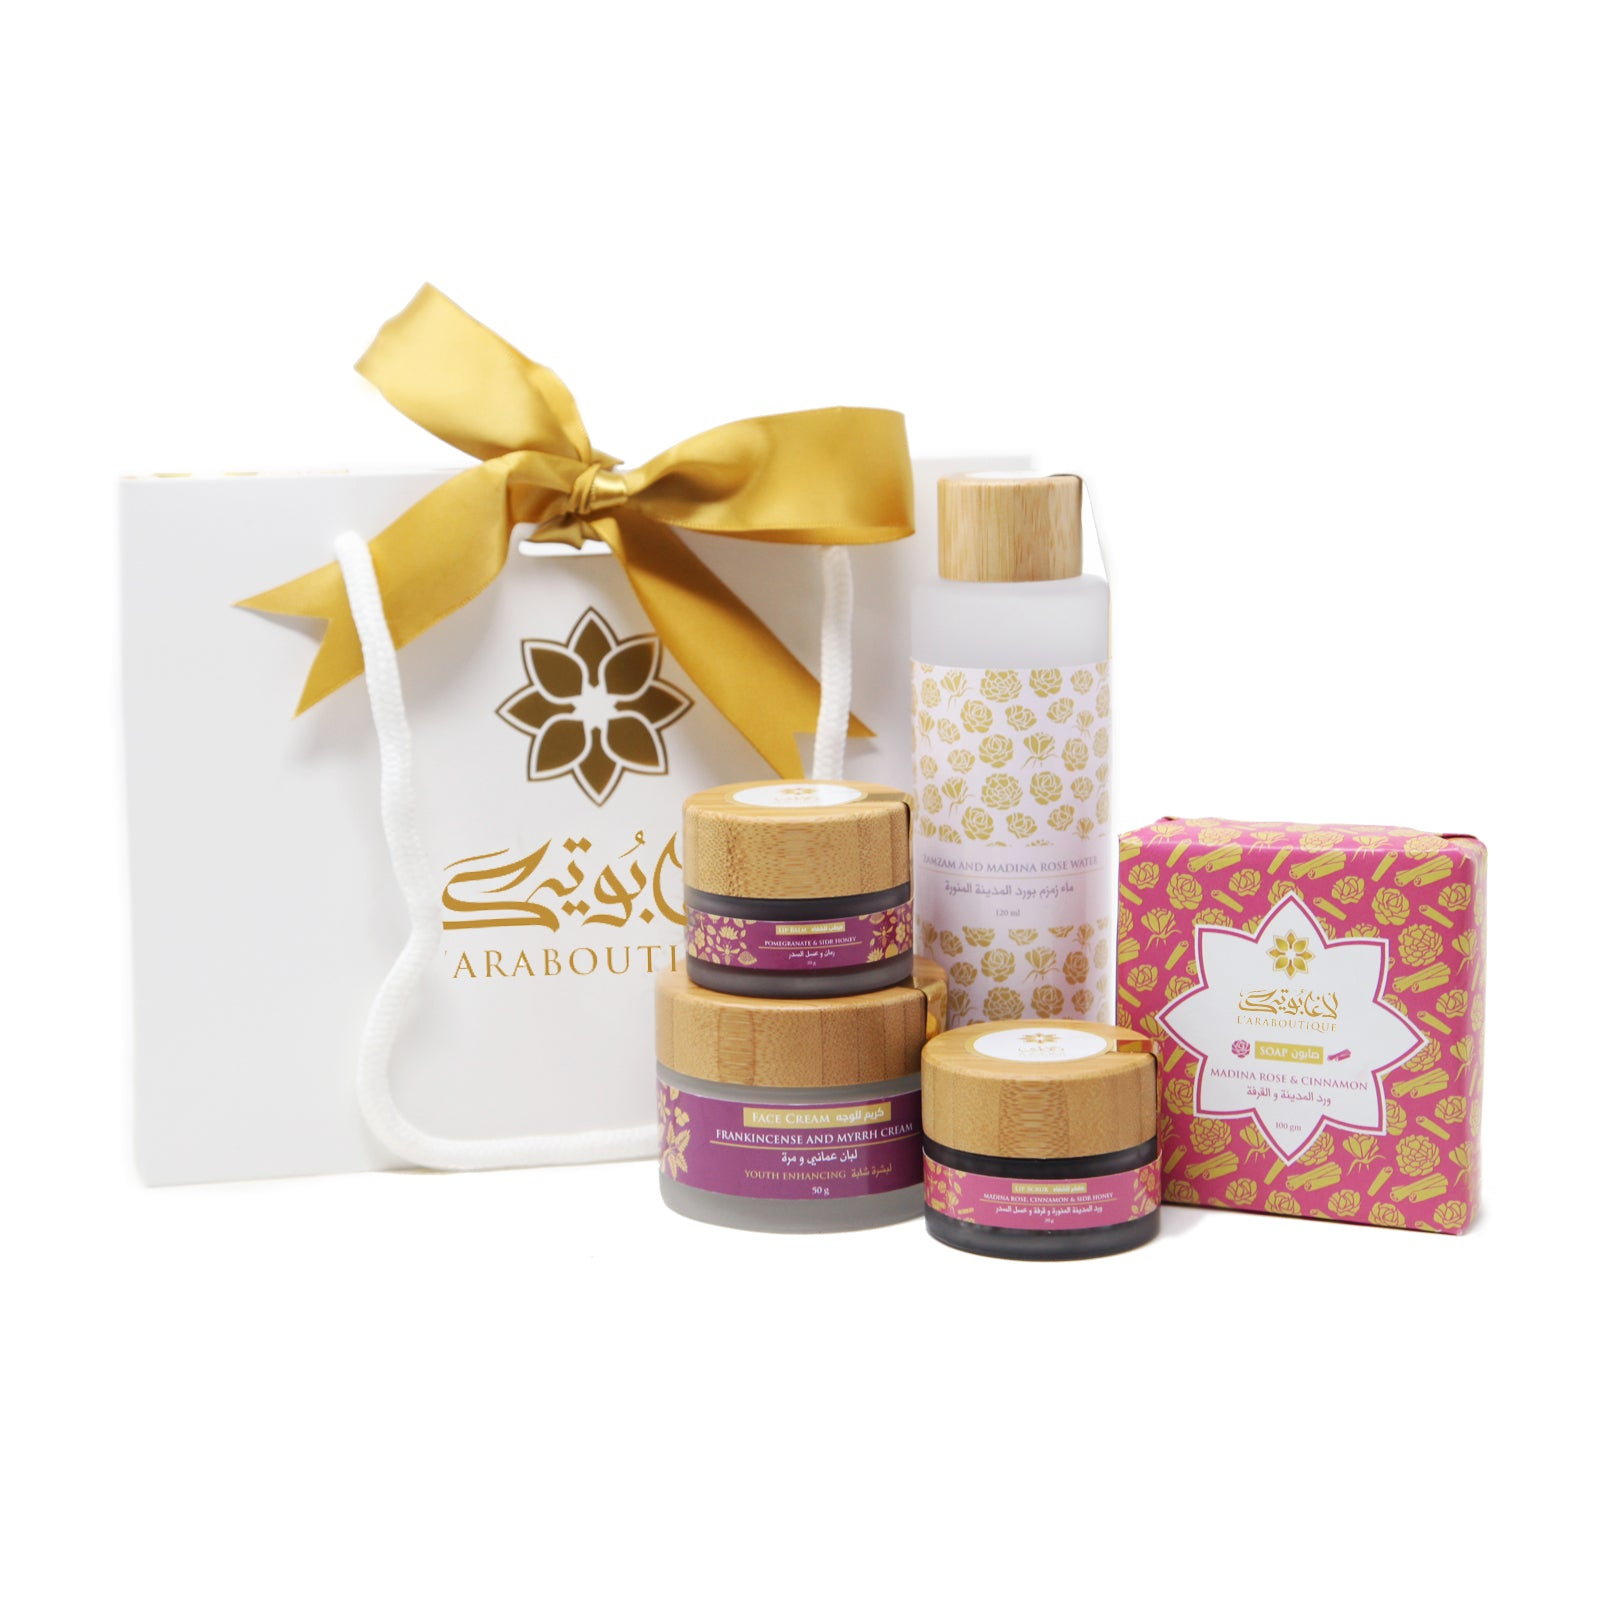 The L'Araboutique Facial Kit